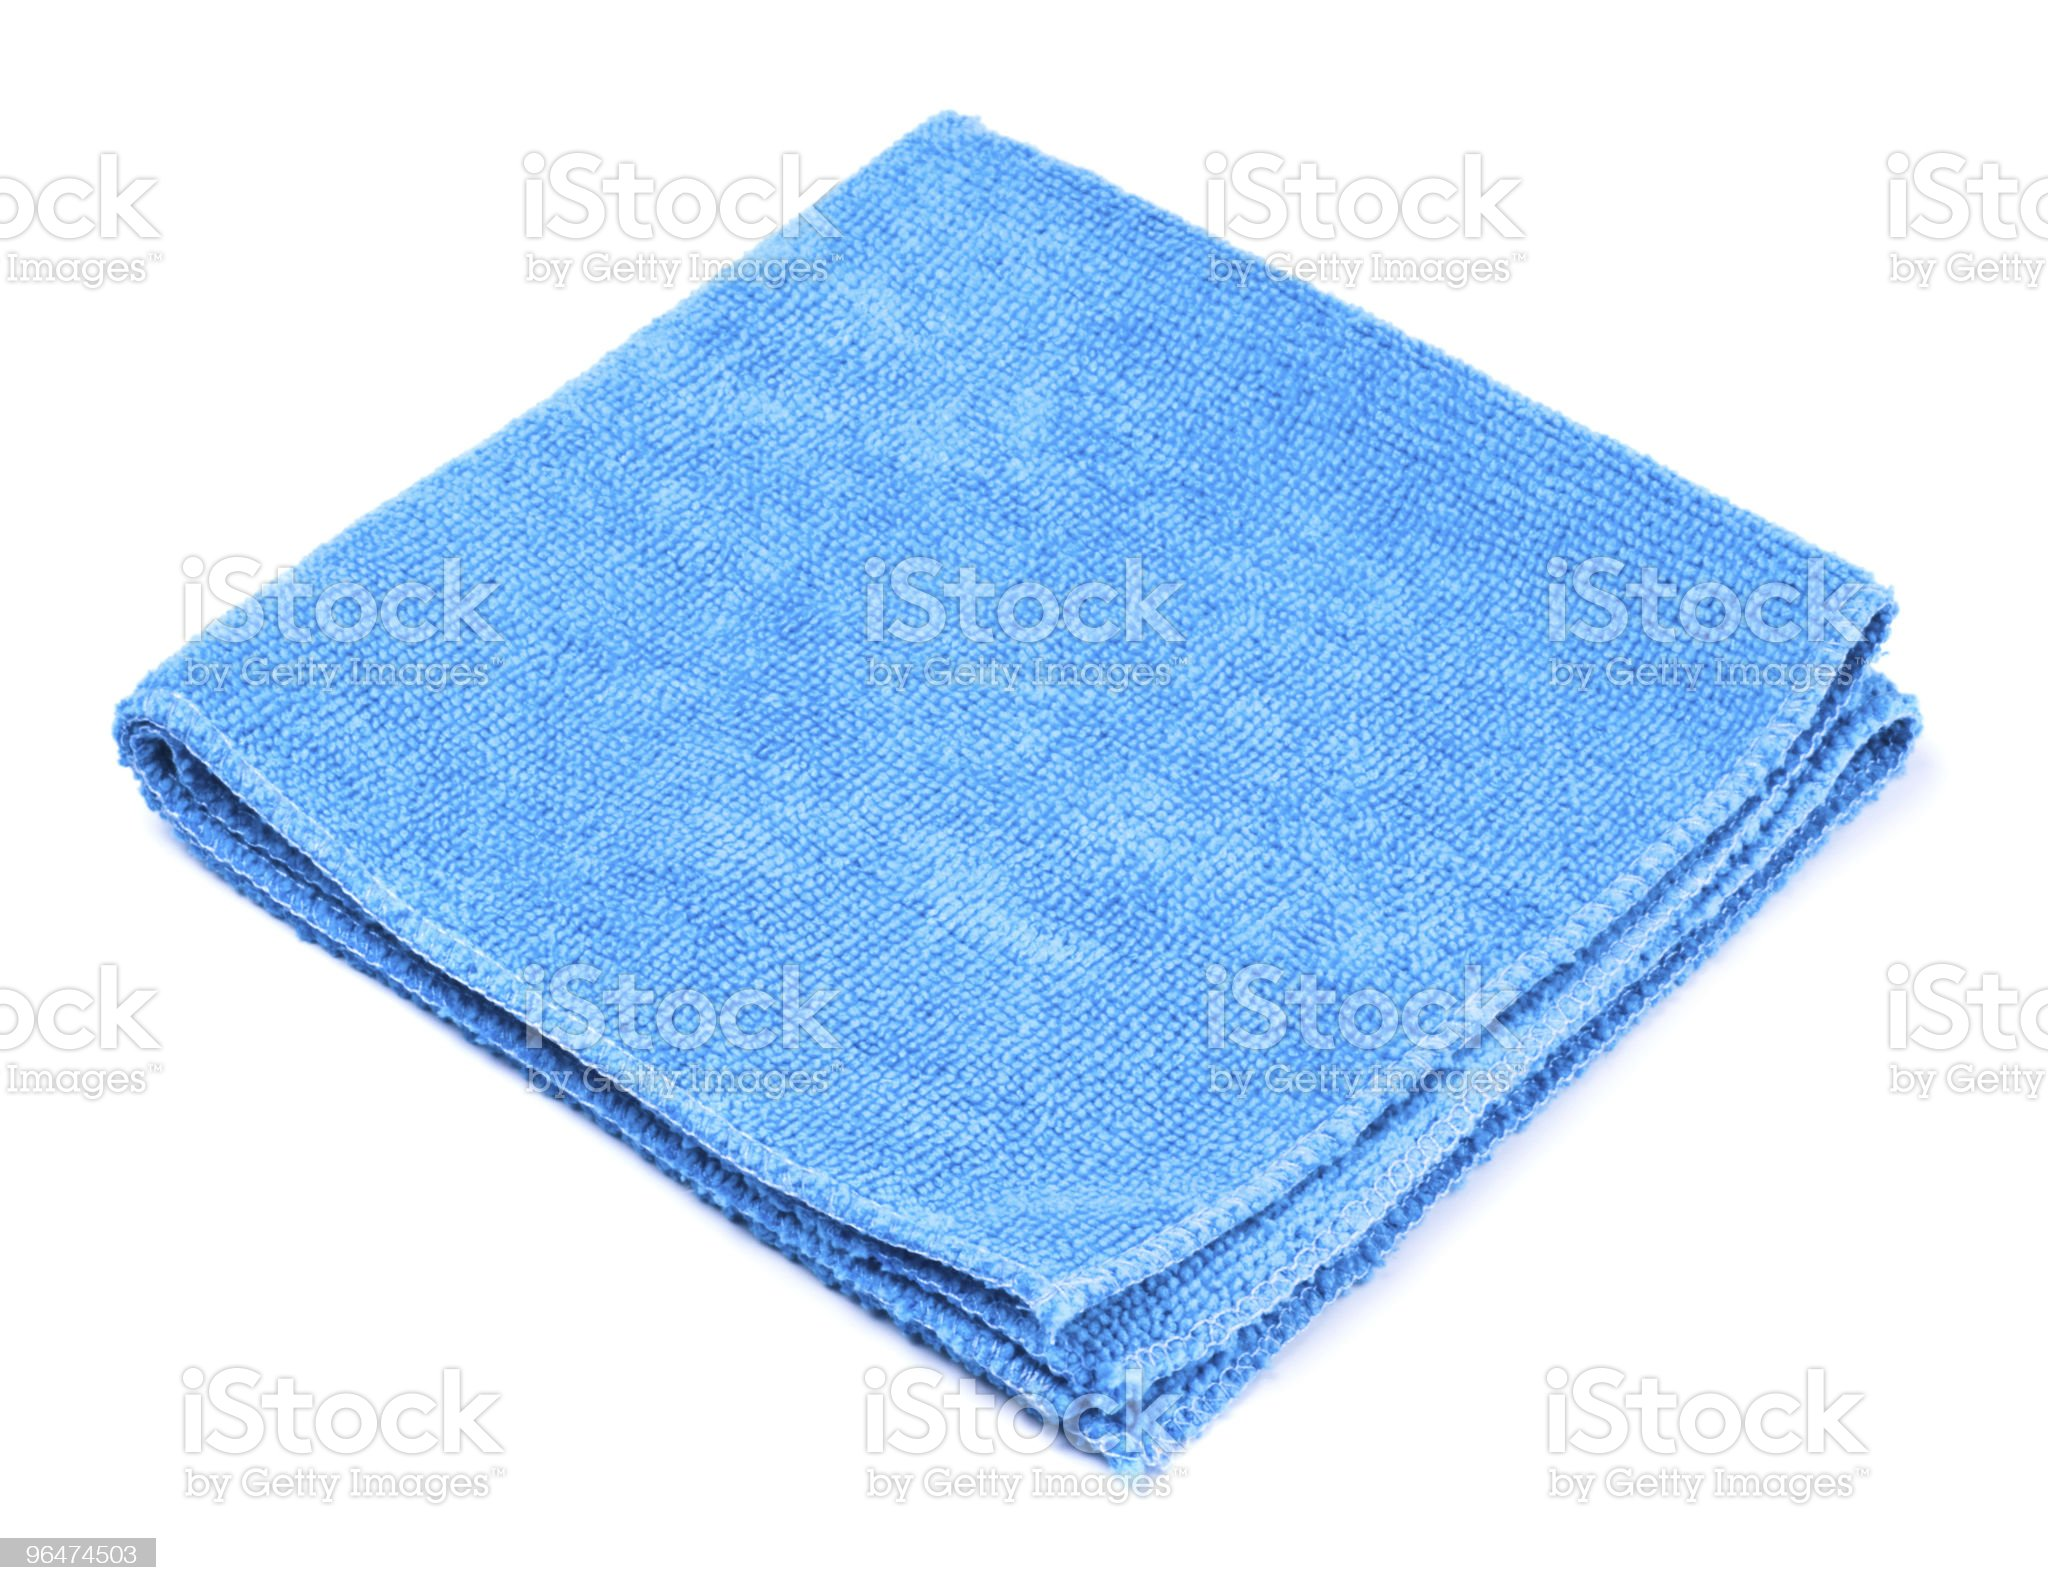 Blue microfiber duster on white background royalty-free stock photo